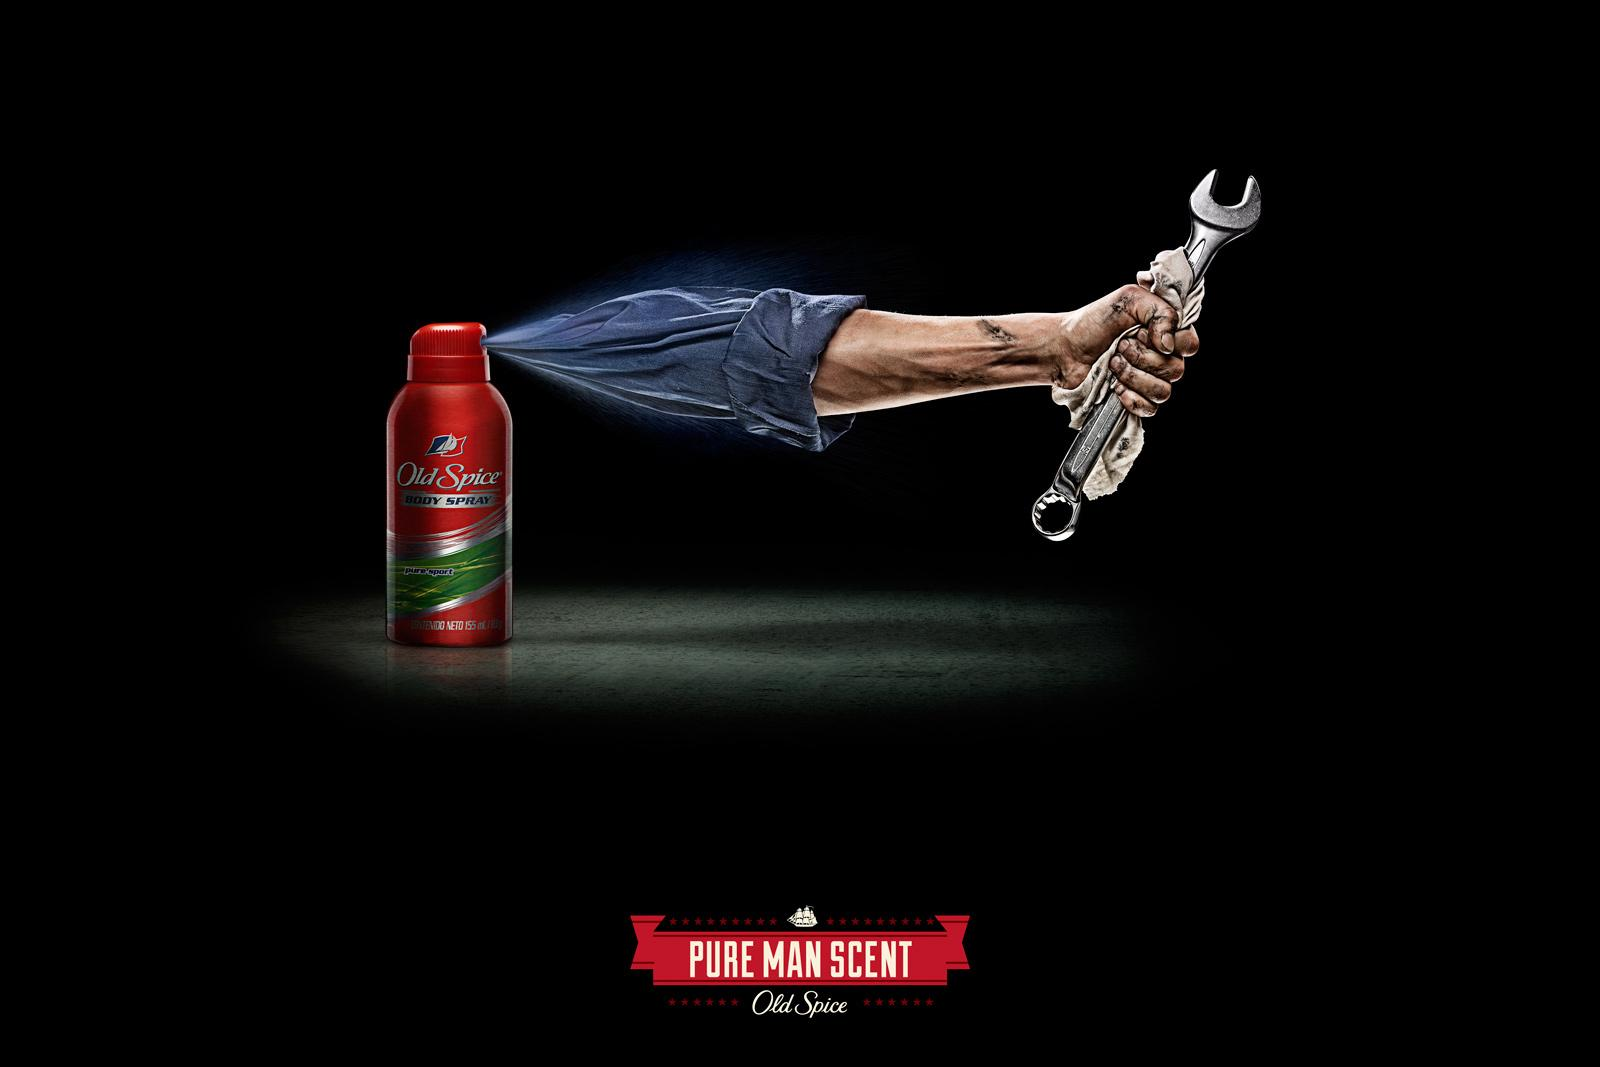 Old Spice Print Ad -  Arms, Mechanic